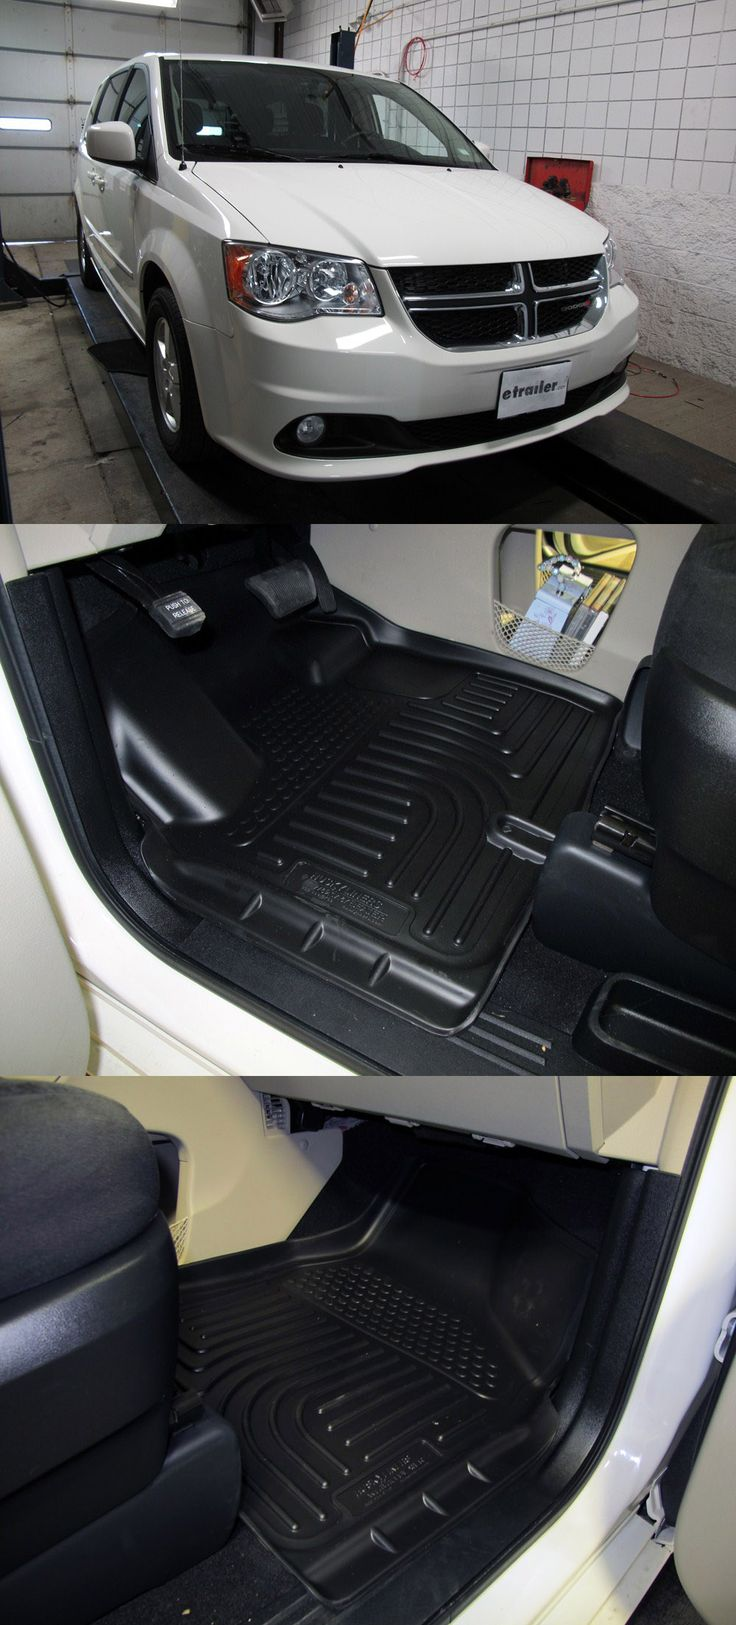 For the cars that inevitably get messy - these accessories are great for traveling to and from school, long road trips and everything in between. Floor matts are compatible with the Dodge Grand Caravan and keep it clean!